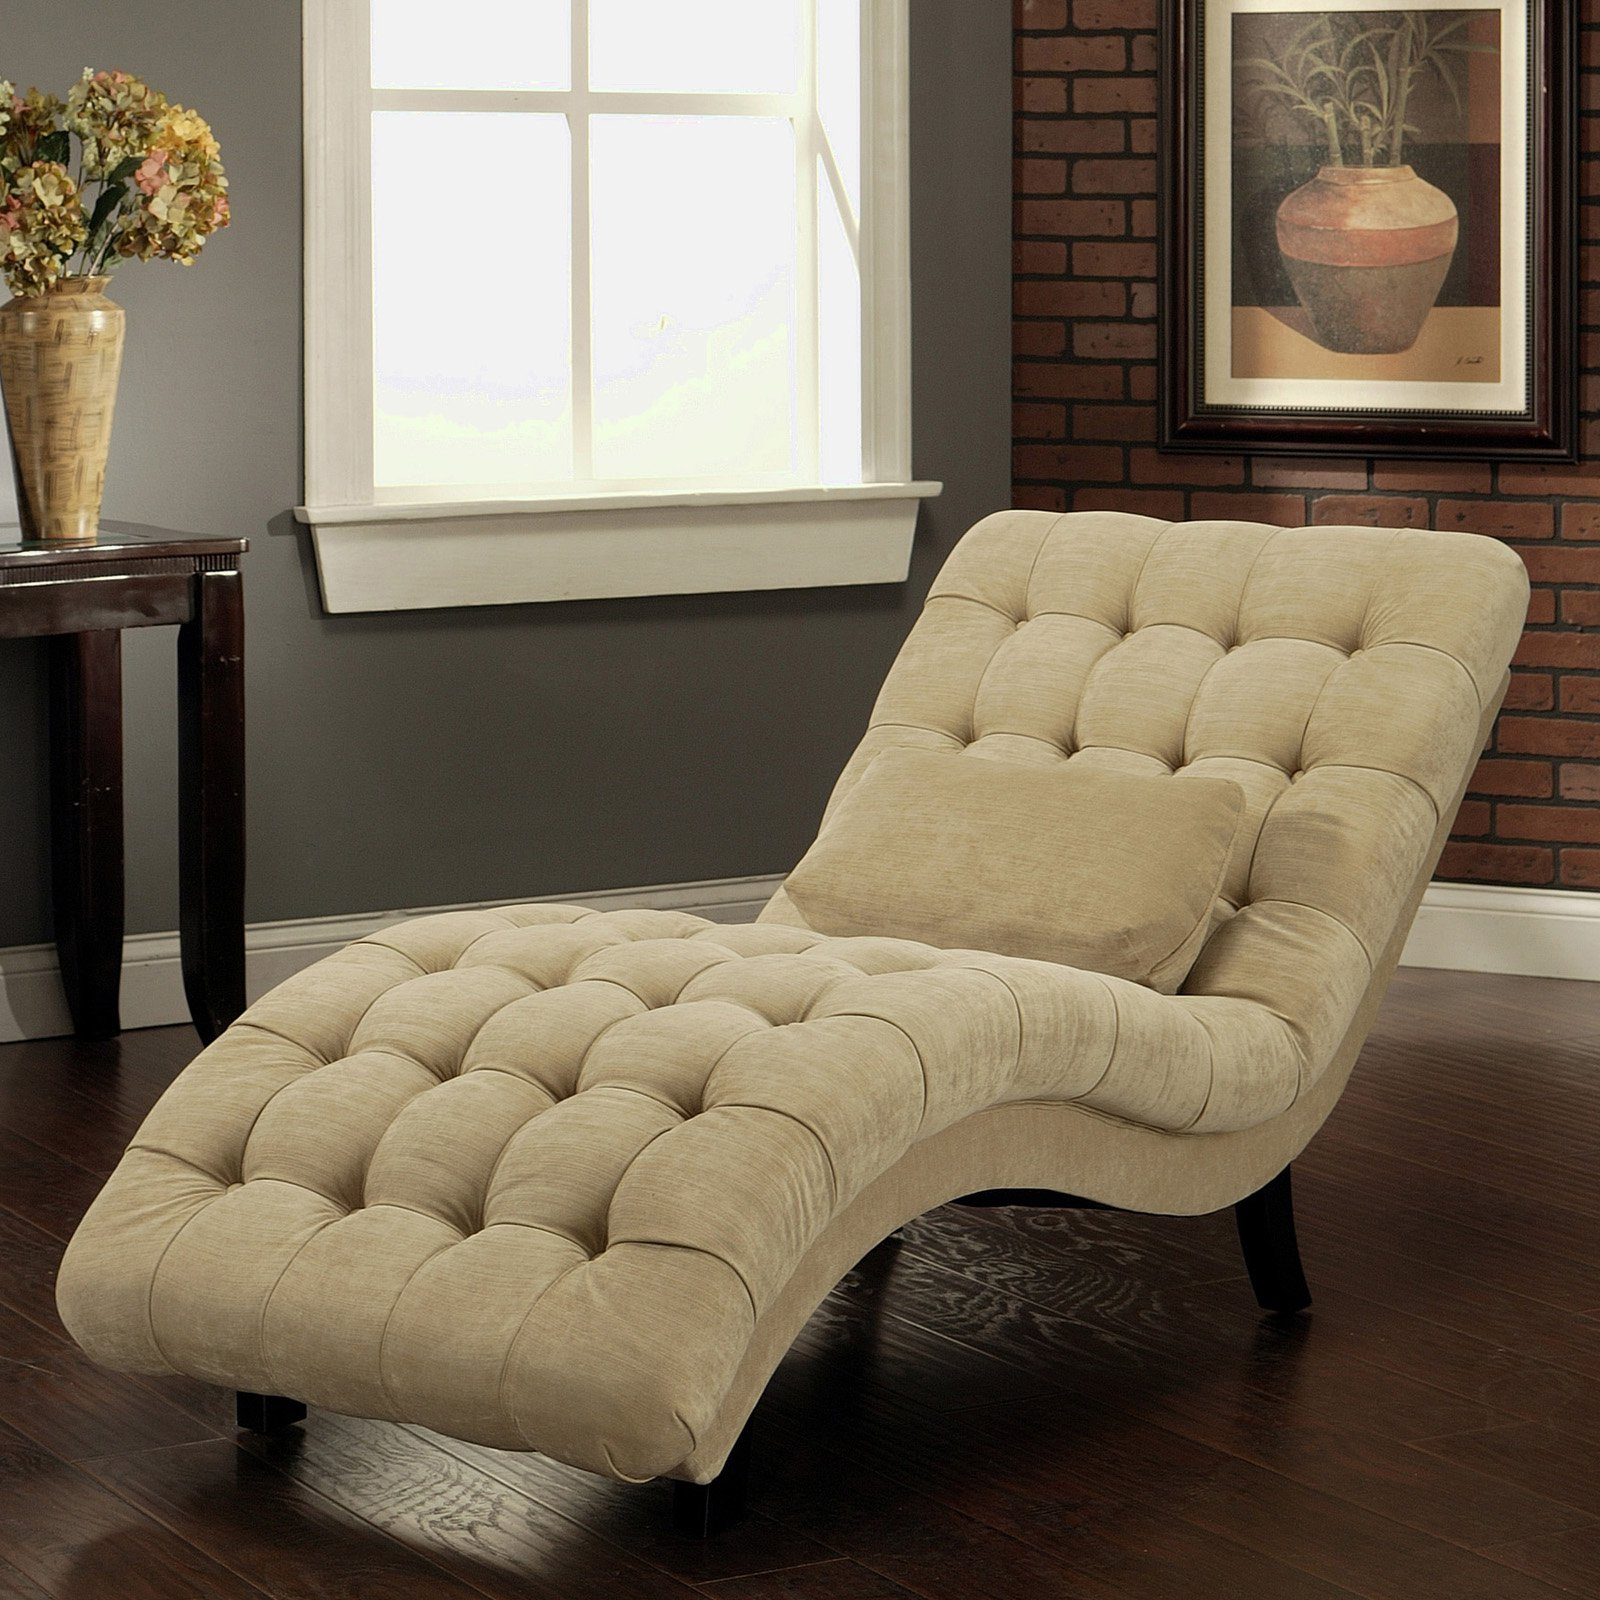 Most Up To Date Furniture White Fabric Chaise Lounge Chairs With Backrest Intended For Lounge Chairs In White With Grey Cushions (View 24 of 25)